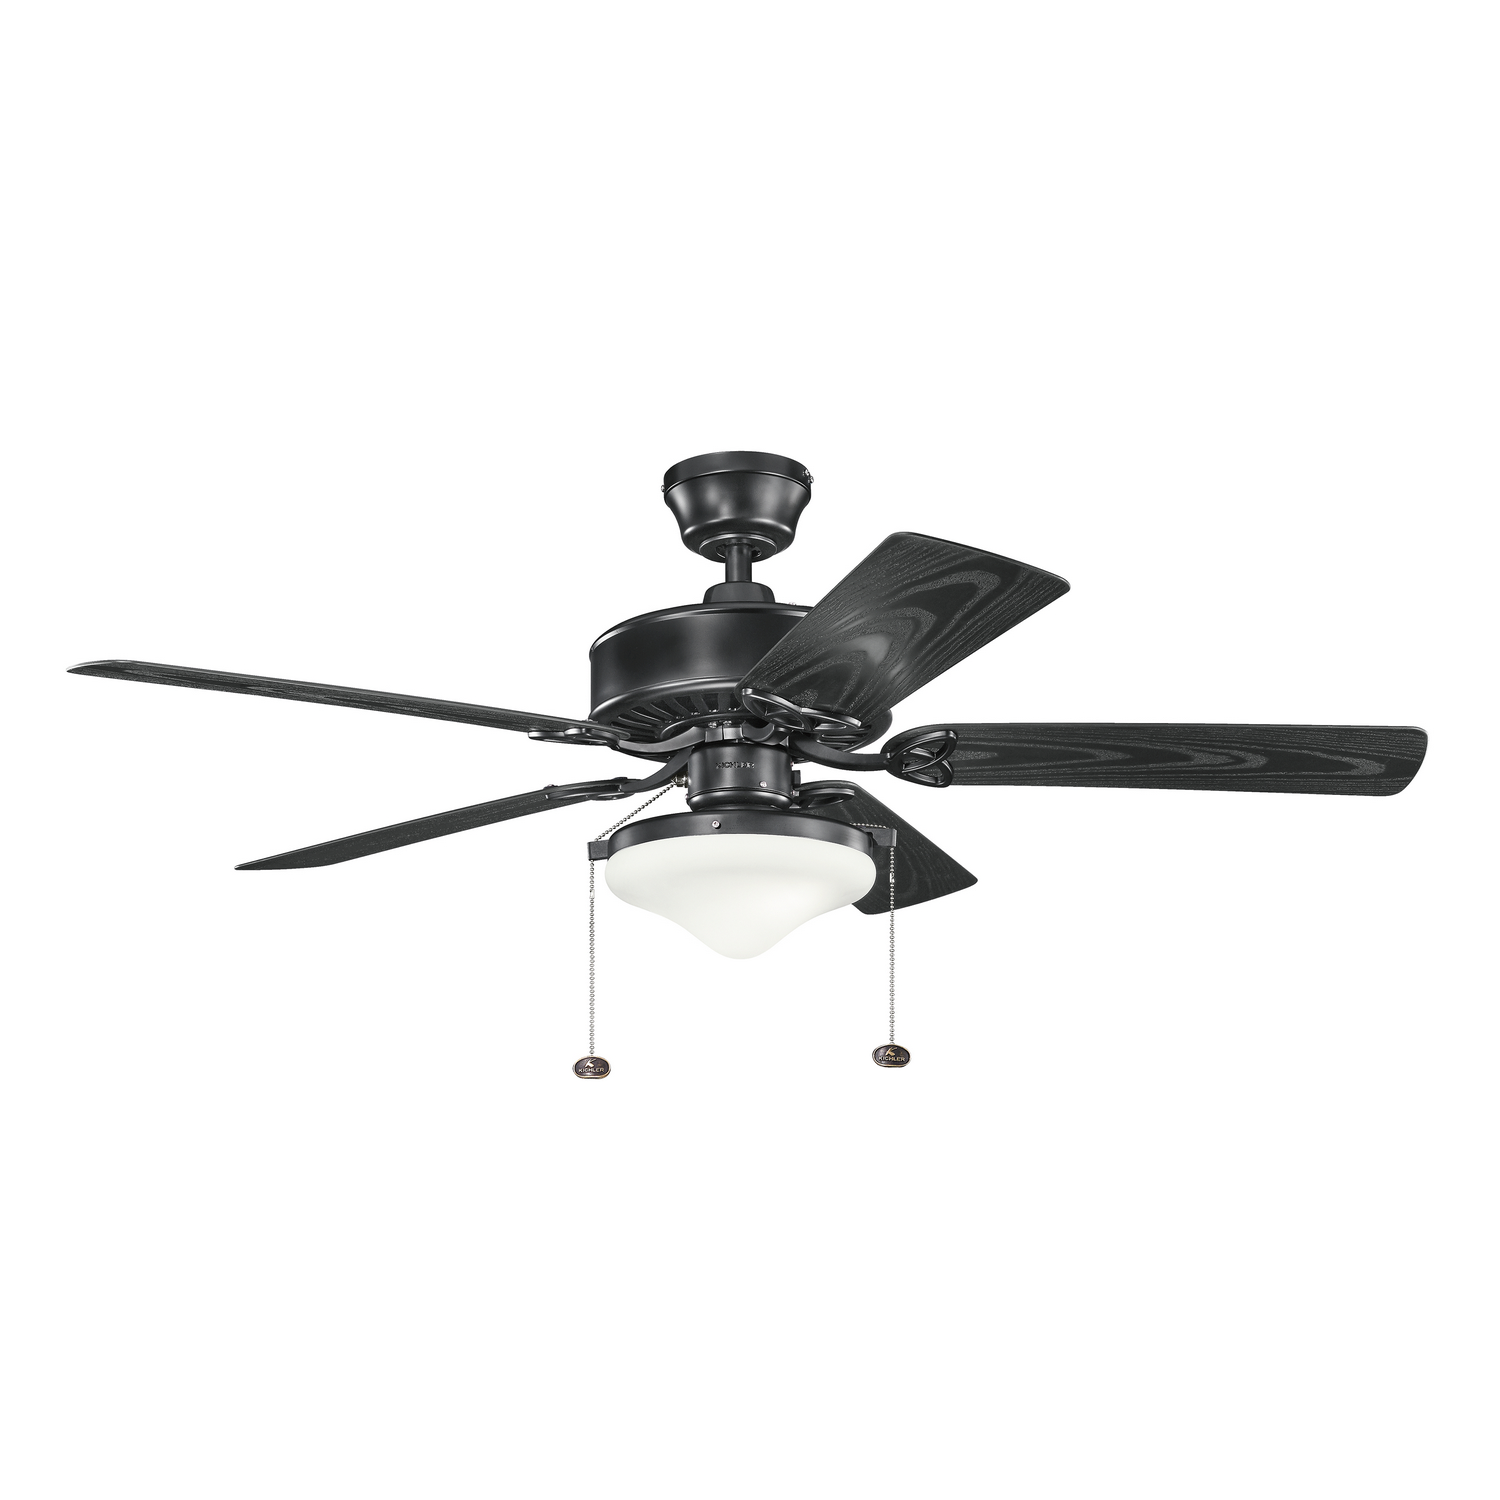 52 inchCeiling Fan from the Patio collection by Kichler 339516SBK